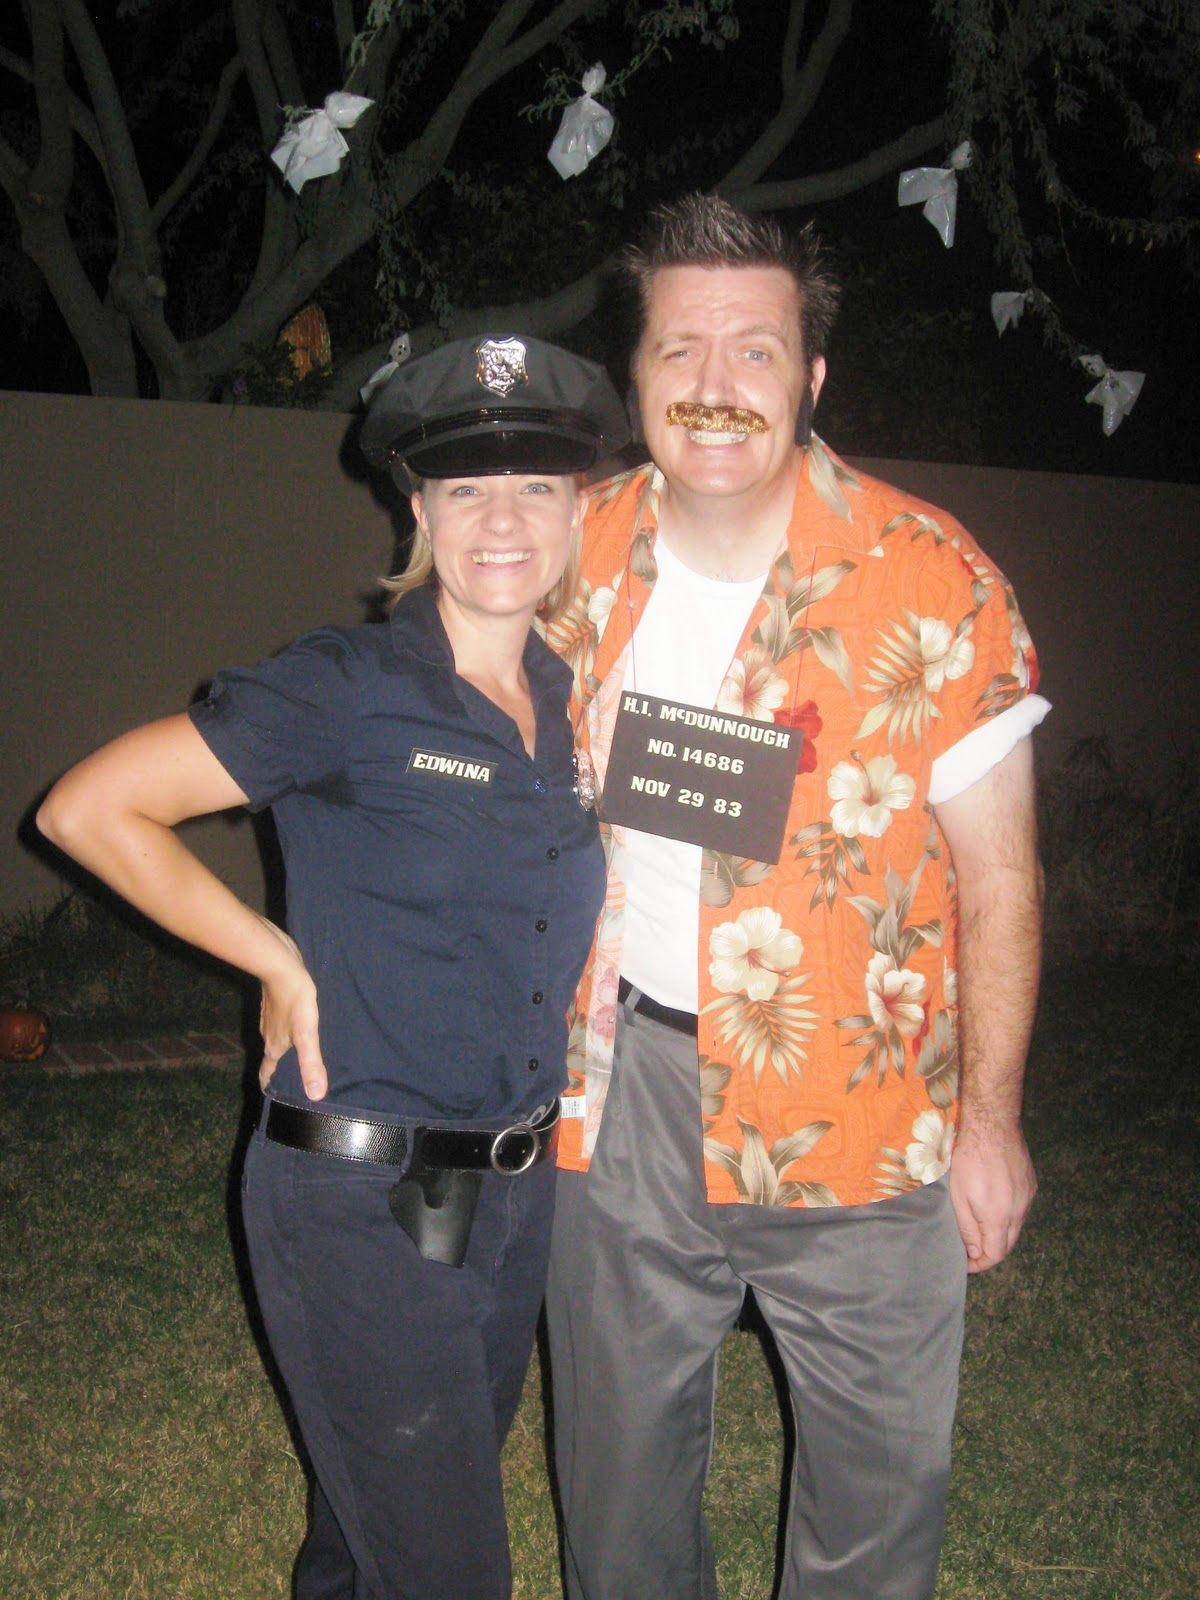 raising arizona halloween costume - Google Search | Halloween ...